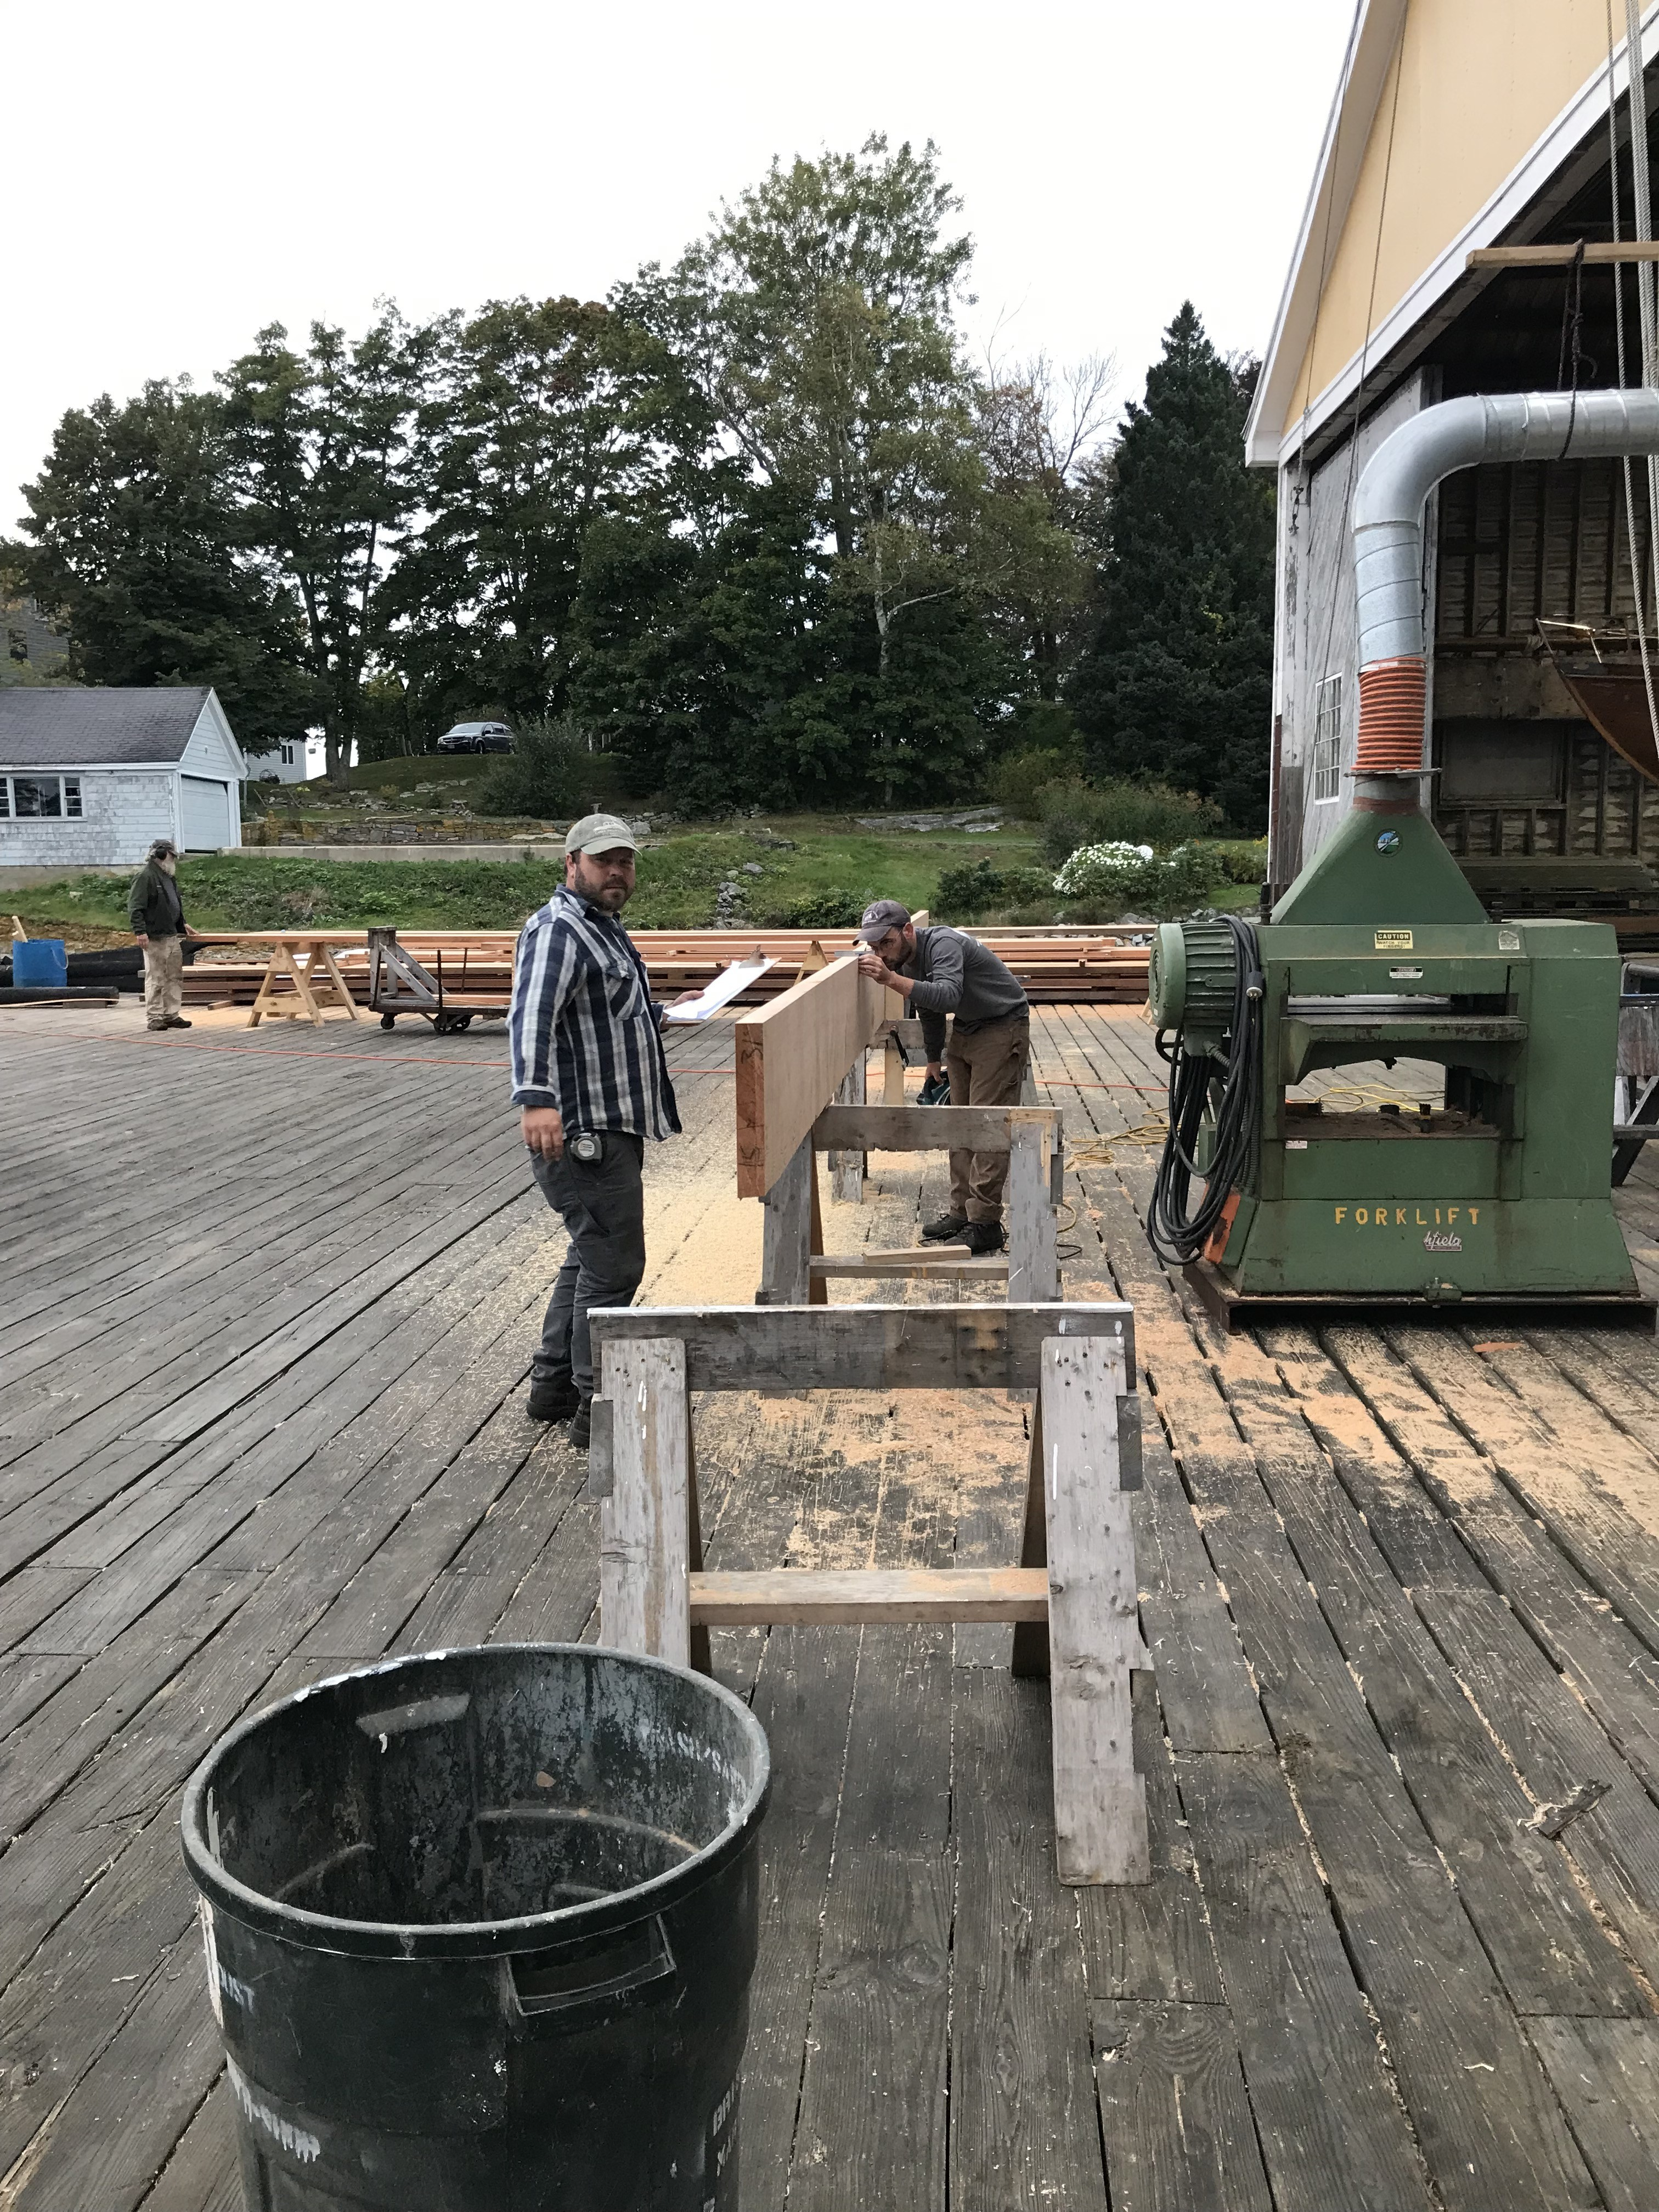 Jason and Sam Perkins are working together using the planer to bring raw lumber into specific thicknesses and widths necessary for the lamination process.  Each board is numbered and is marked to fit into a particular spar in a particular spot.  This lamination plan requires absolute accuracy in the preparation of each piece of lumber to ensure that the finished product meets required dimensions.